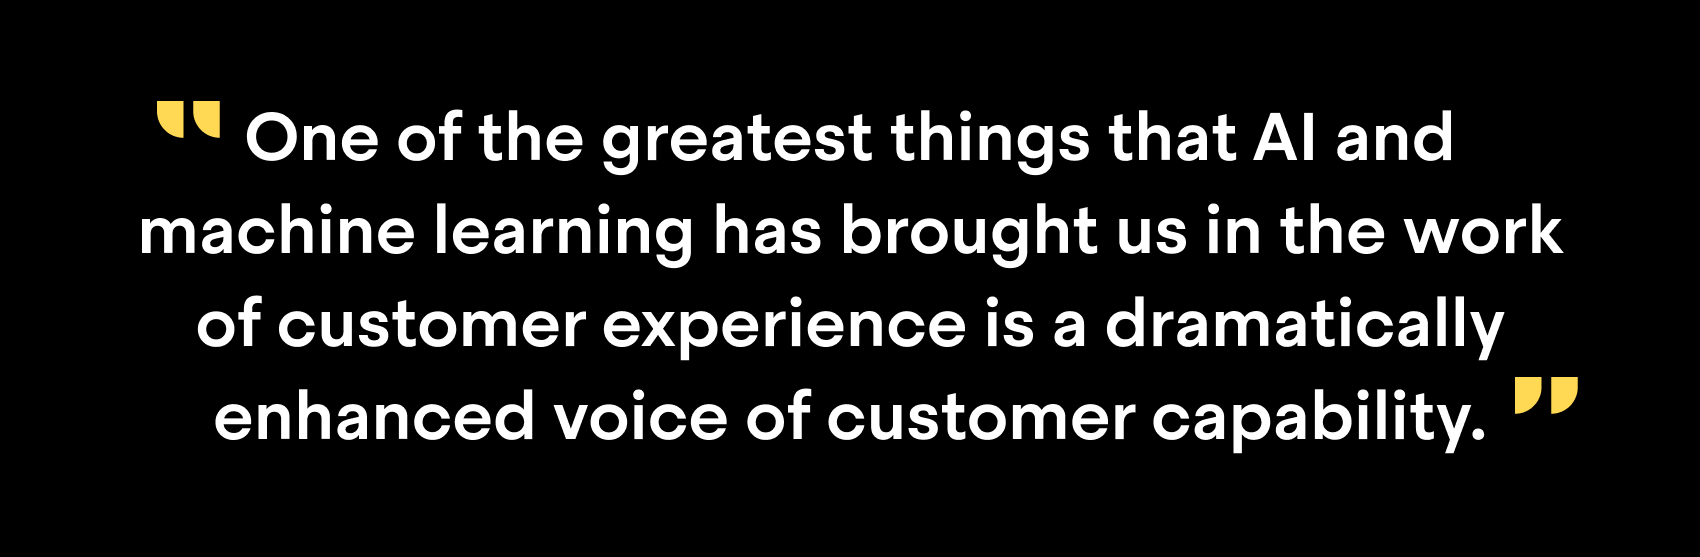 """One of the greatest things that AI and machine learning has brought us in the work of customer experience is a dramatically enhanced voice of customer capacity"""